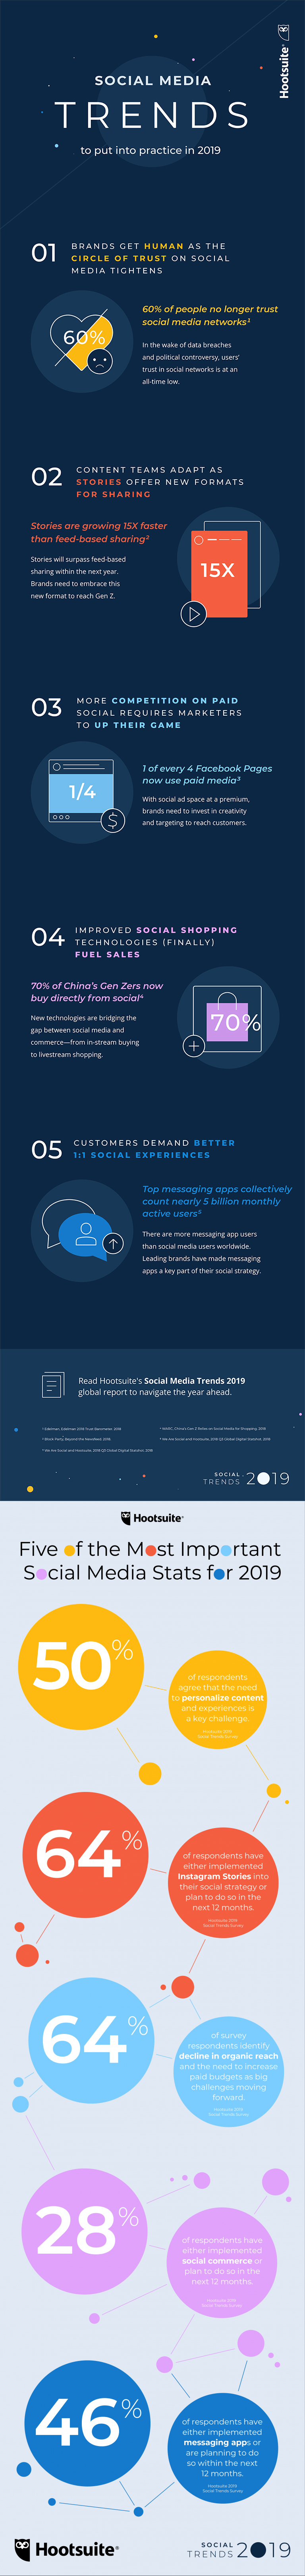 Infographic: Top 5 Social Media Trends